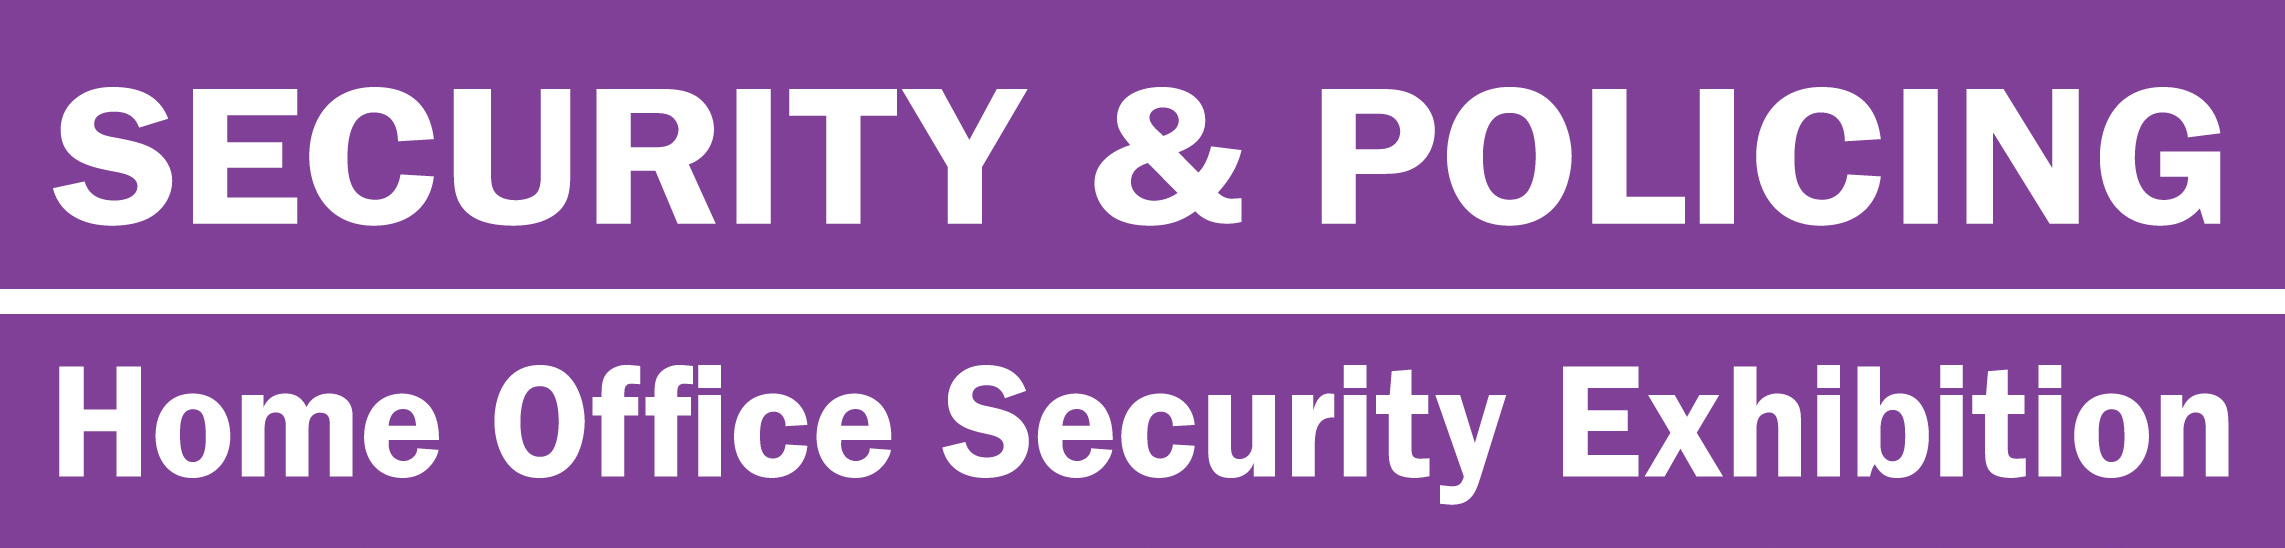 IPS exhibitor at Security & Policing 2015